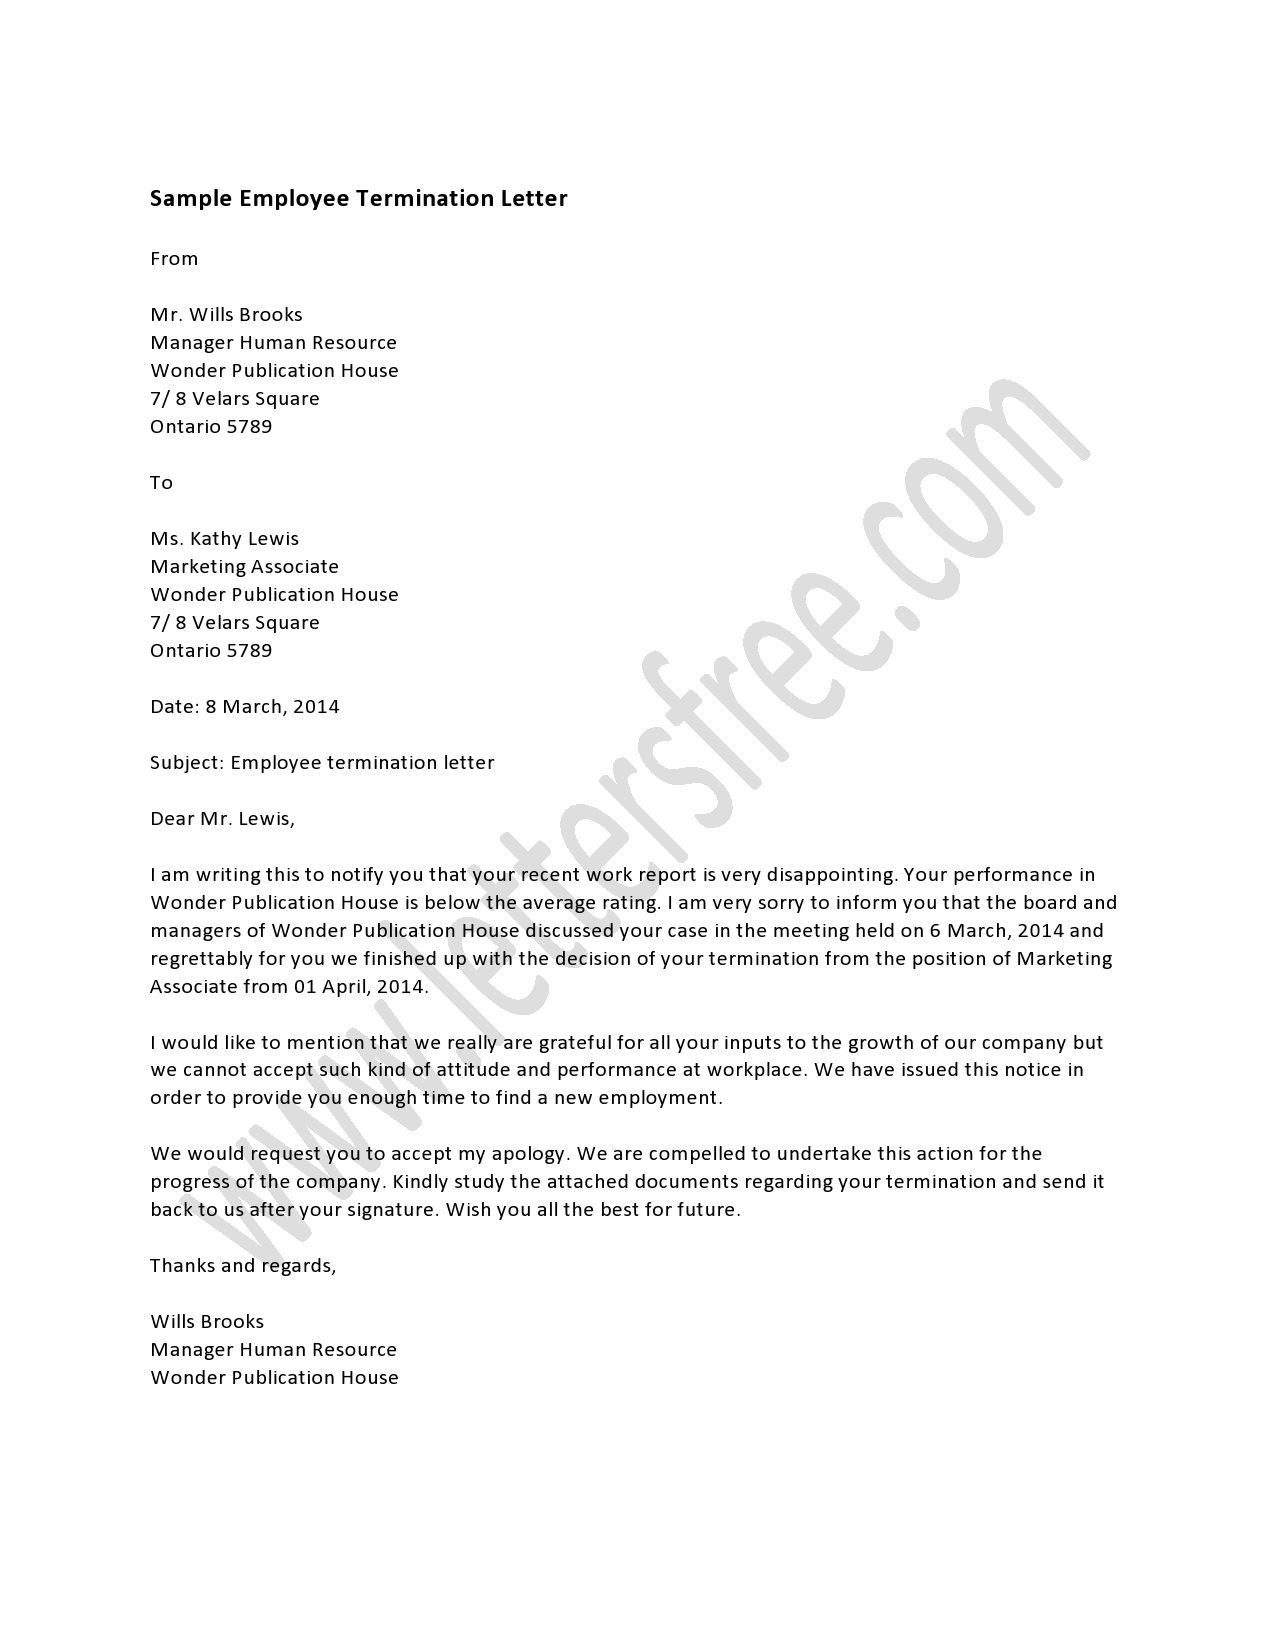 Employee Termination Letter Is A Template Used By Companies To